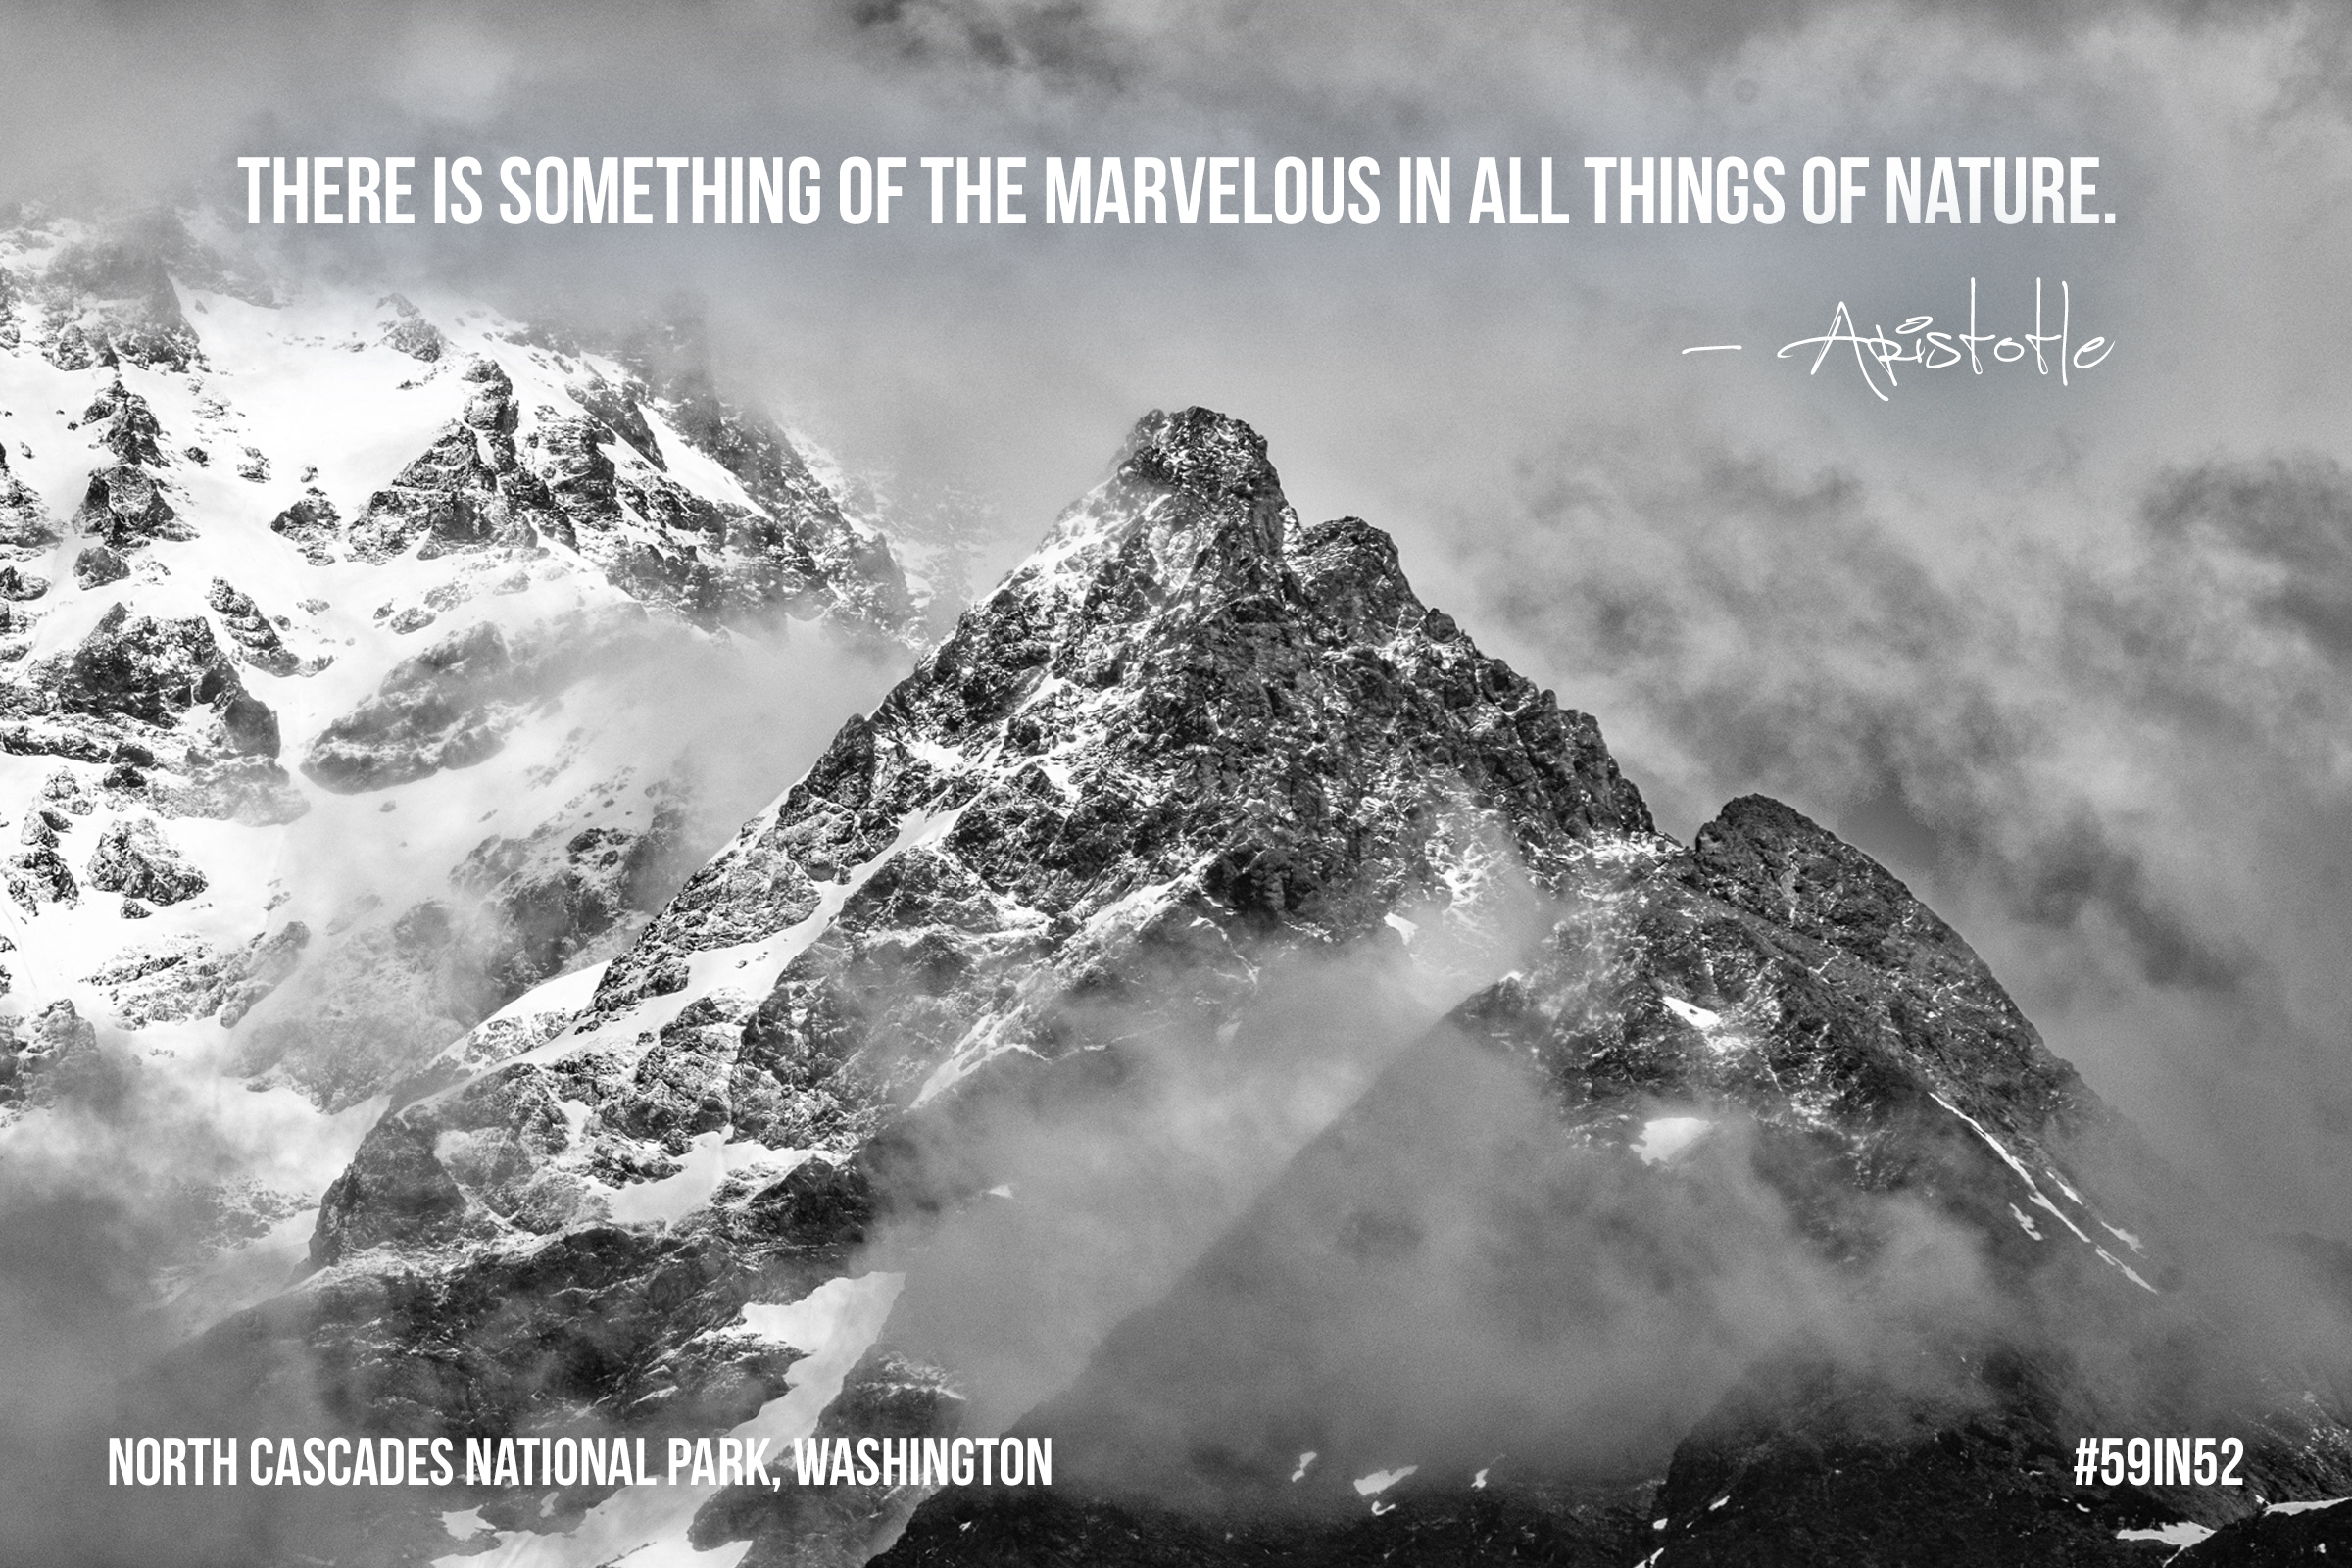 """There is something of the marvelous in all things of nature."" - Aristotle"